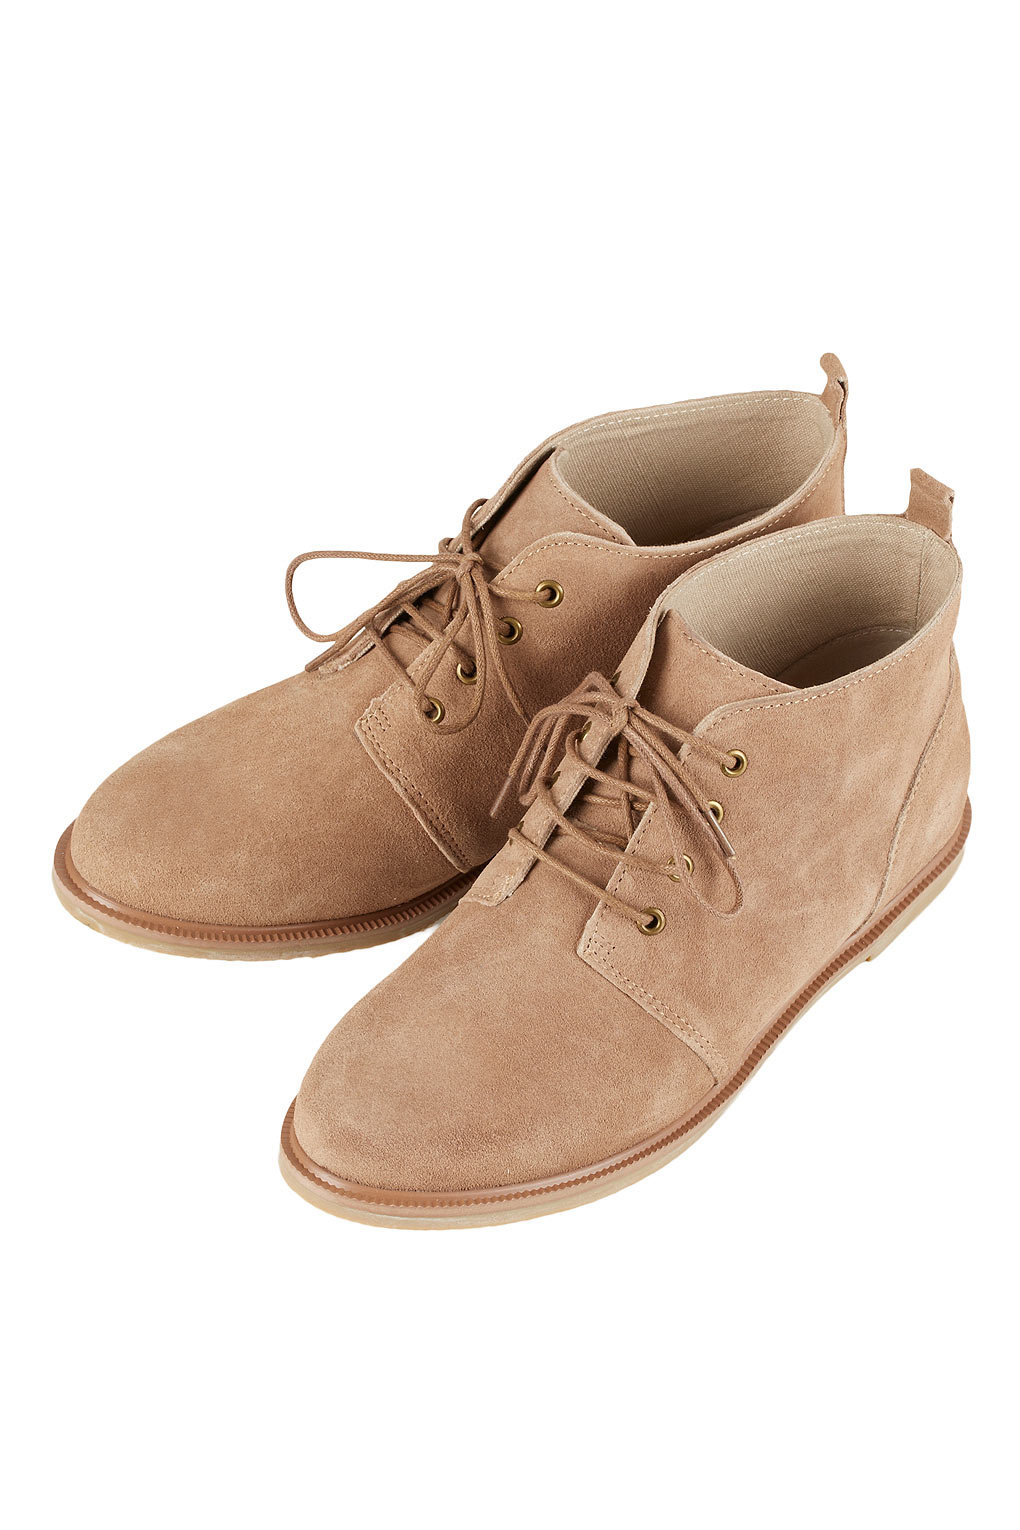 marsden suede desert boots boots from topshop shoes